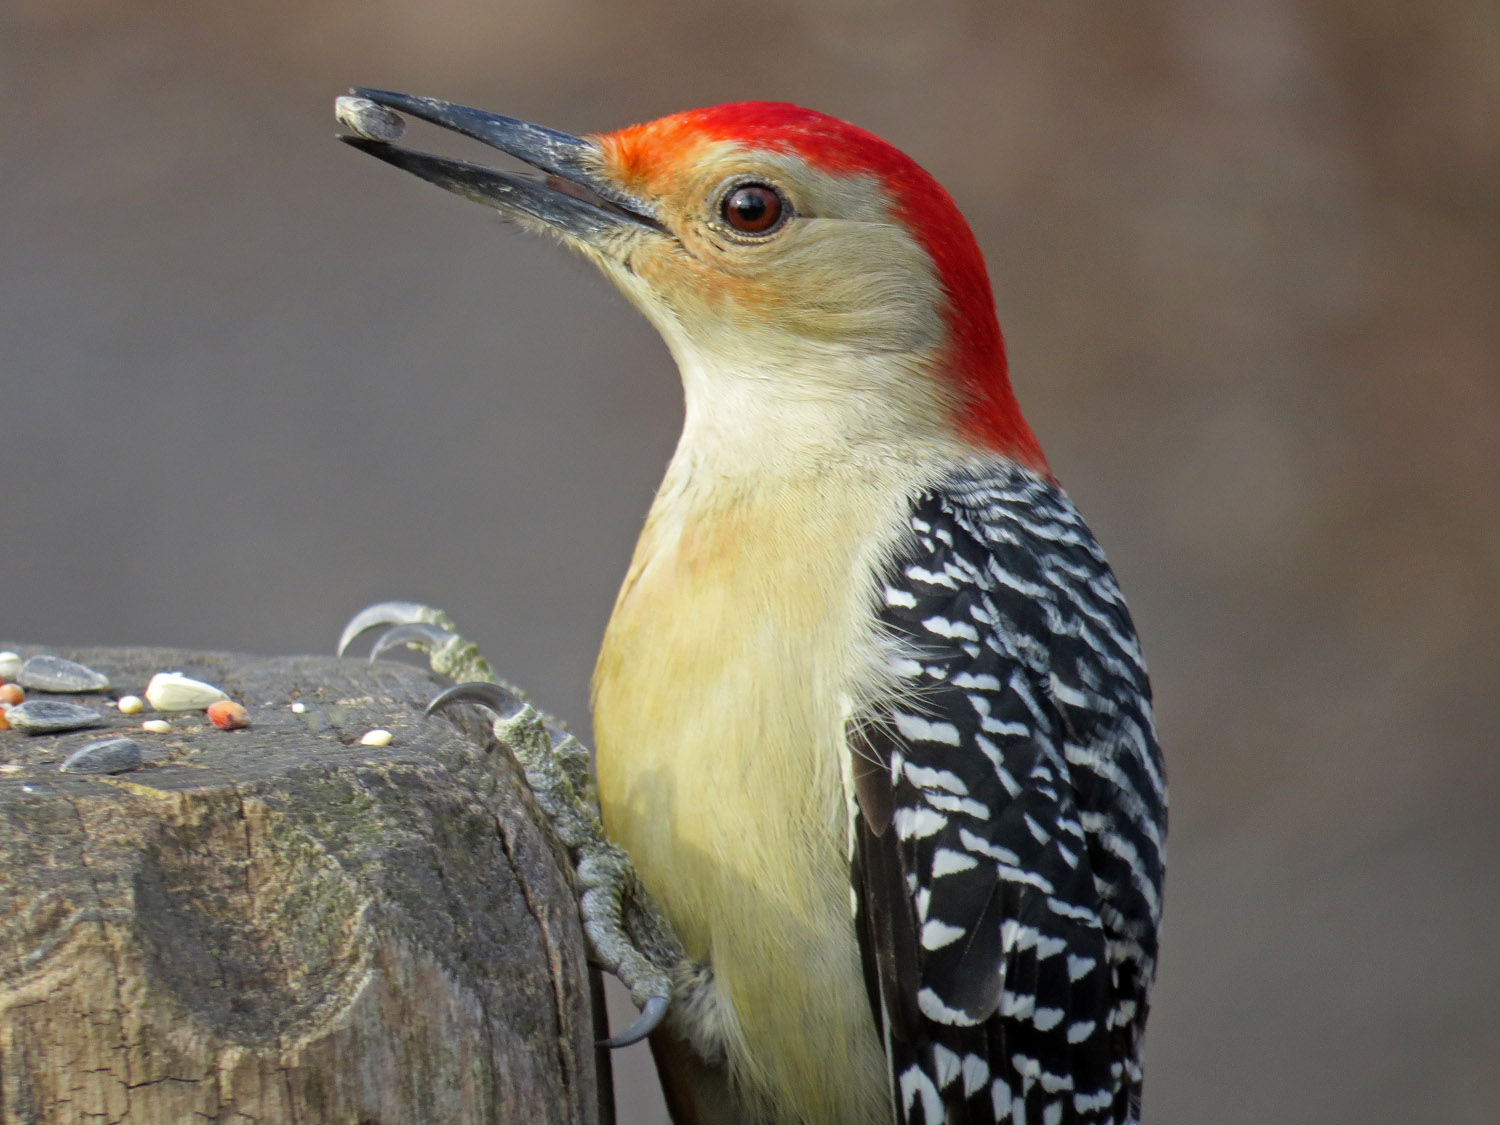 Red-bellied woodpecker at Laupot Bridge, Central Park, January 2, 2015 (also, the two photos below)